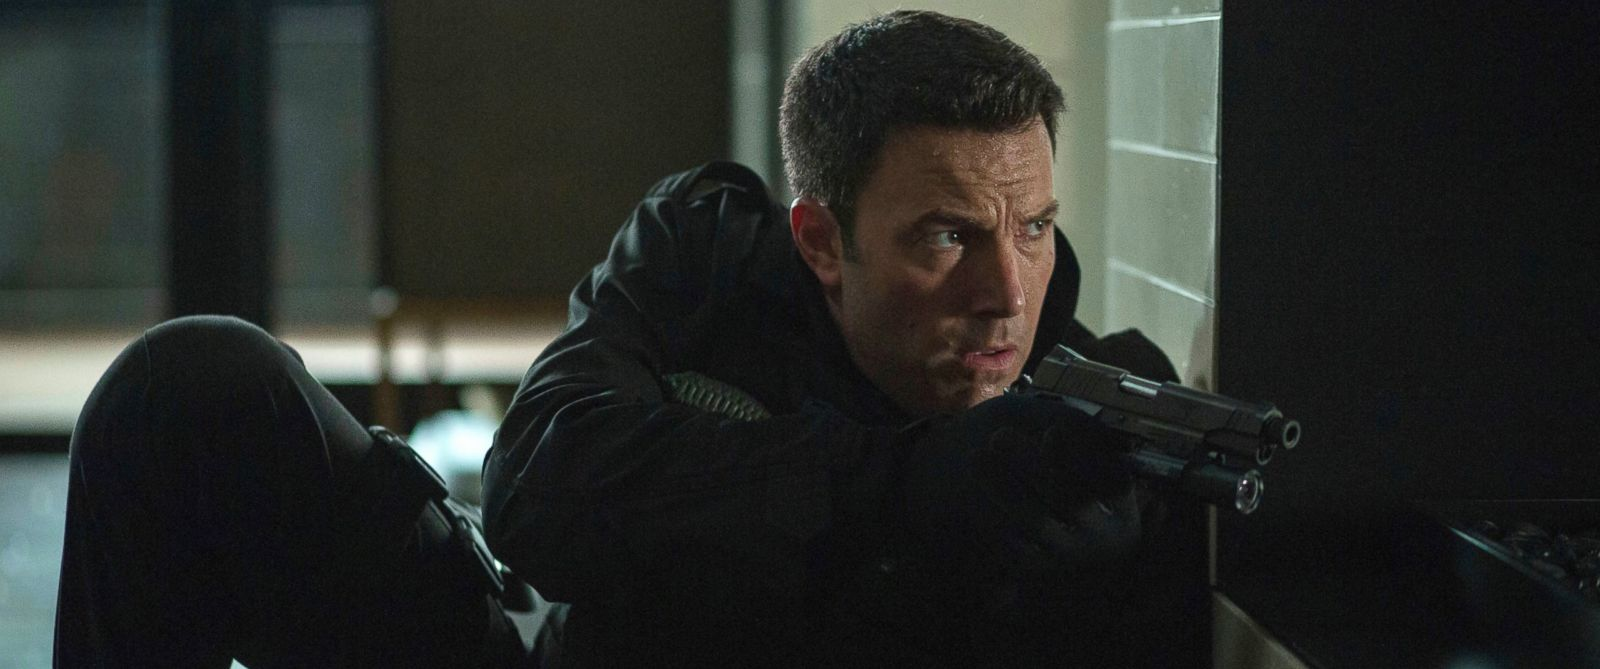 """PHOTO: Ben Affleck appears in a scene from """"The Accountant"""" in this image released by Warner Bros. Pictures."""